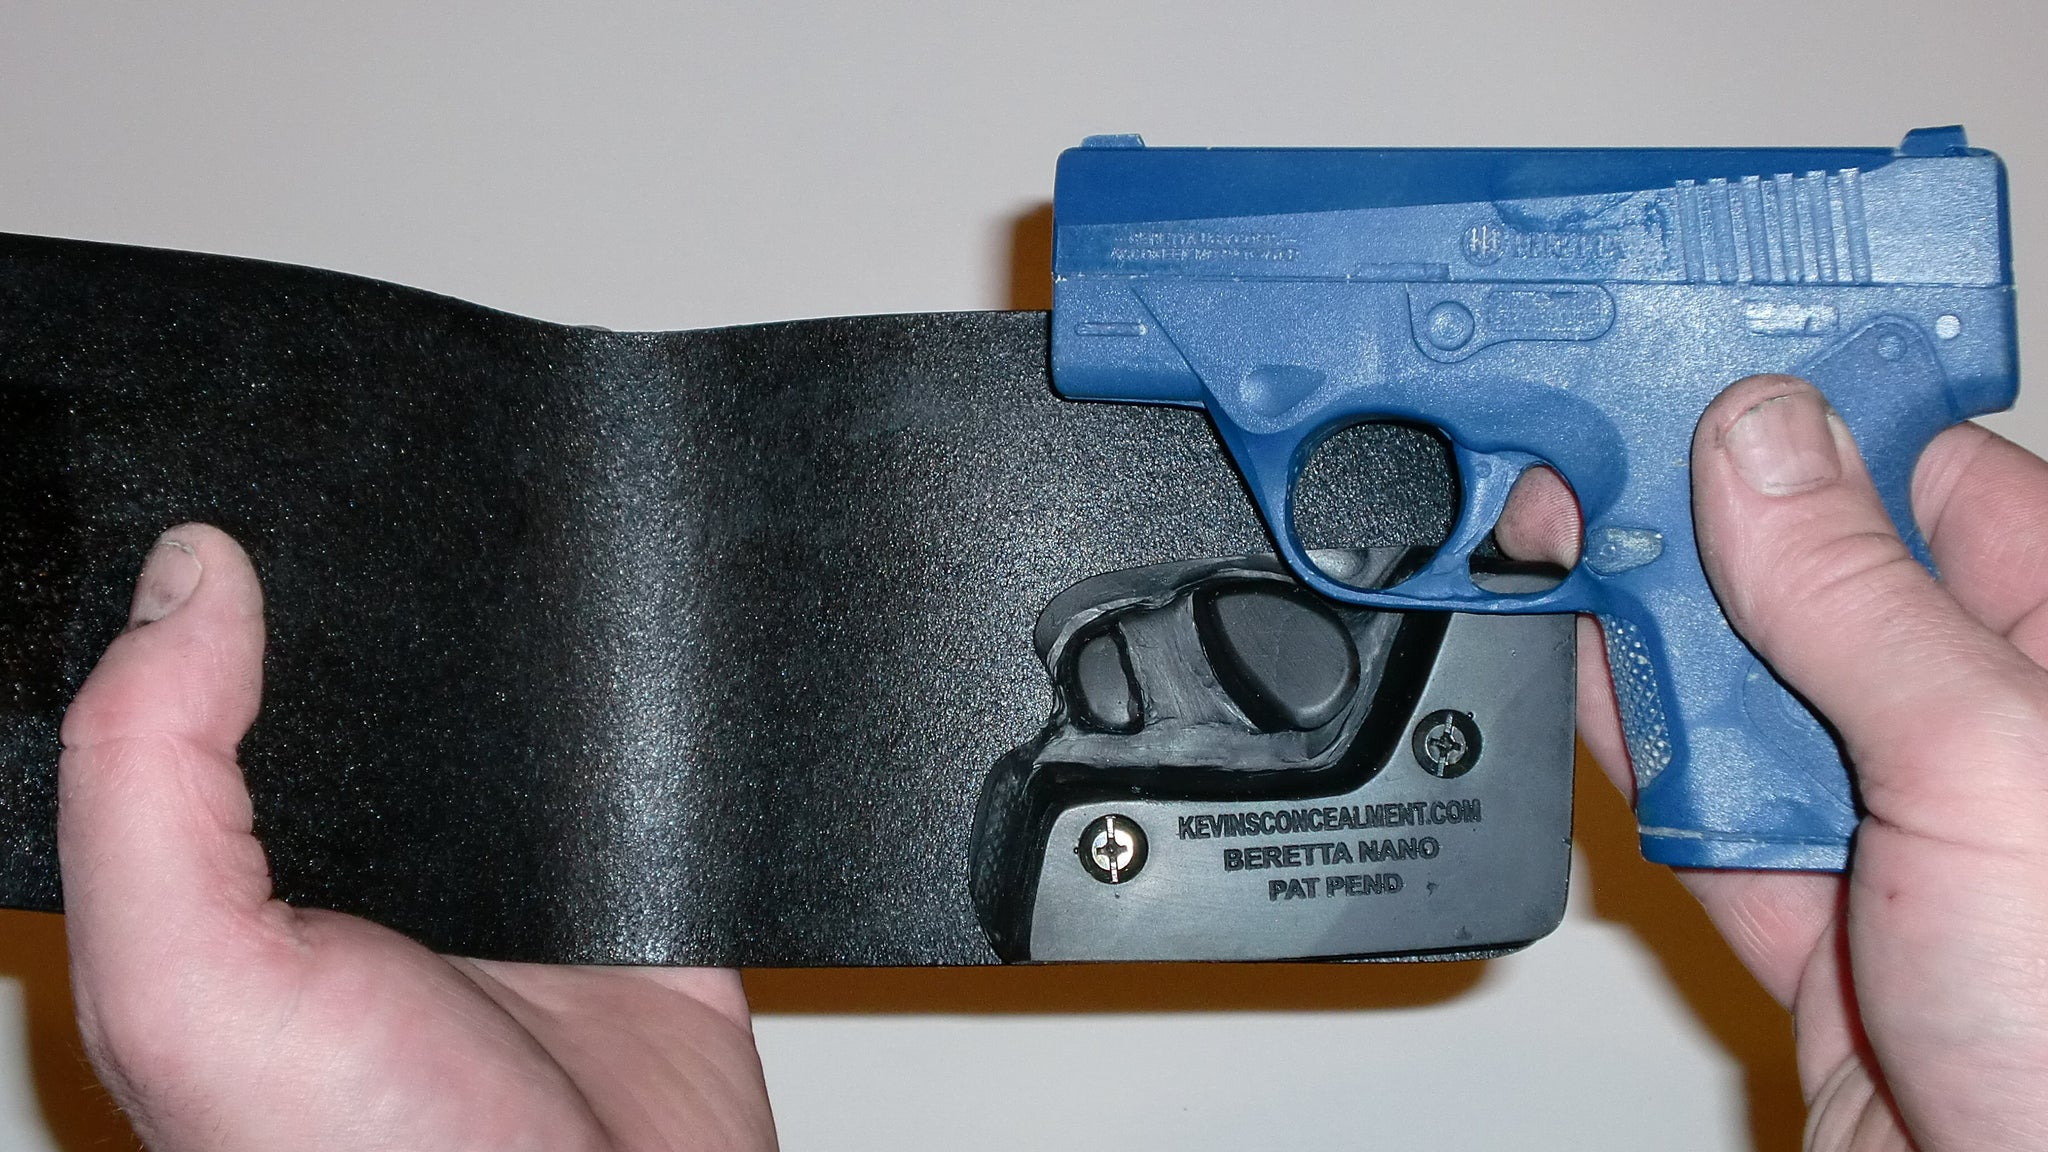 Wallet Holster For Full Concealment - Beretta Nano